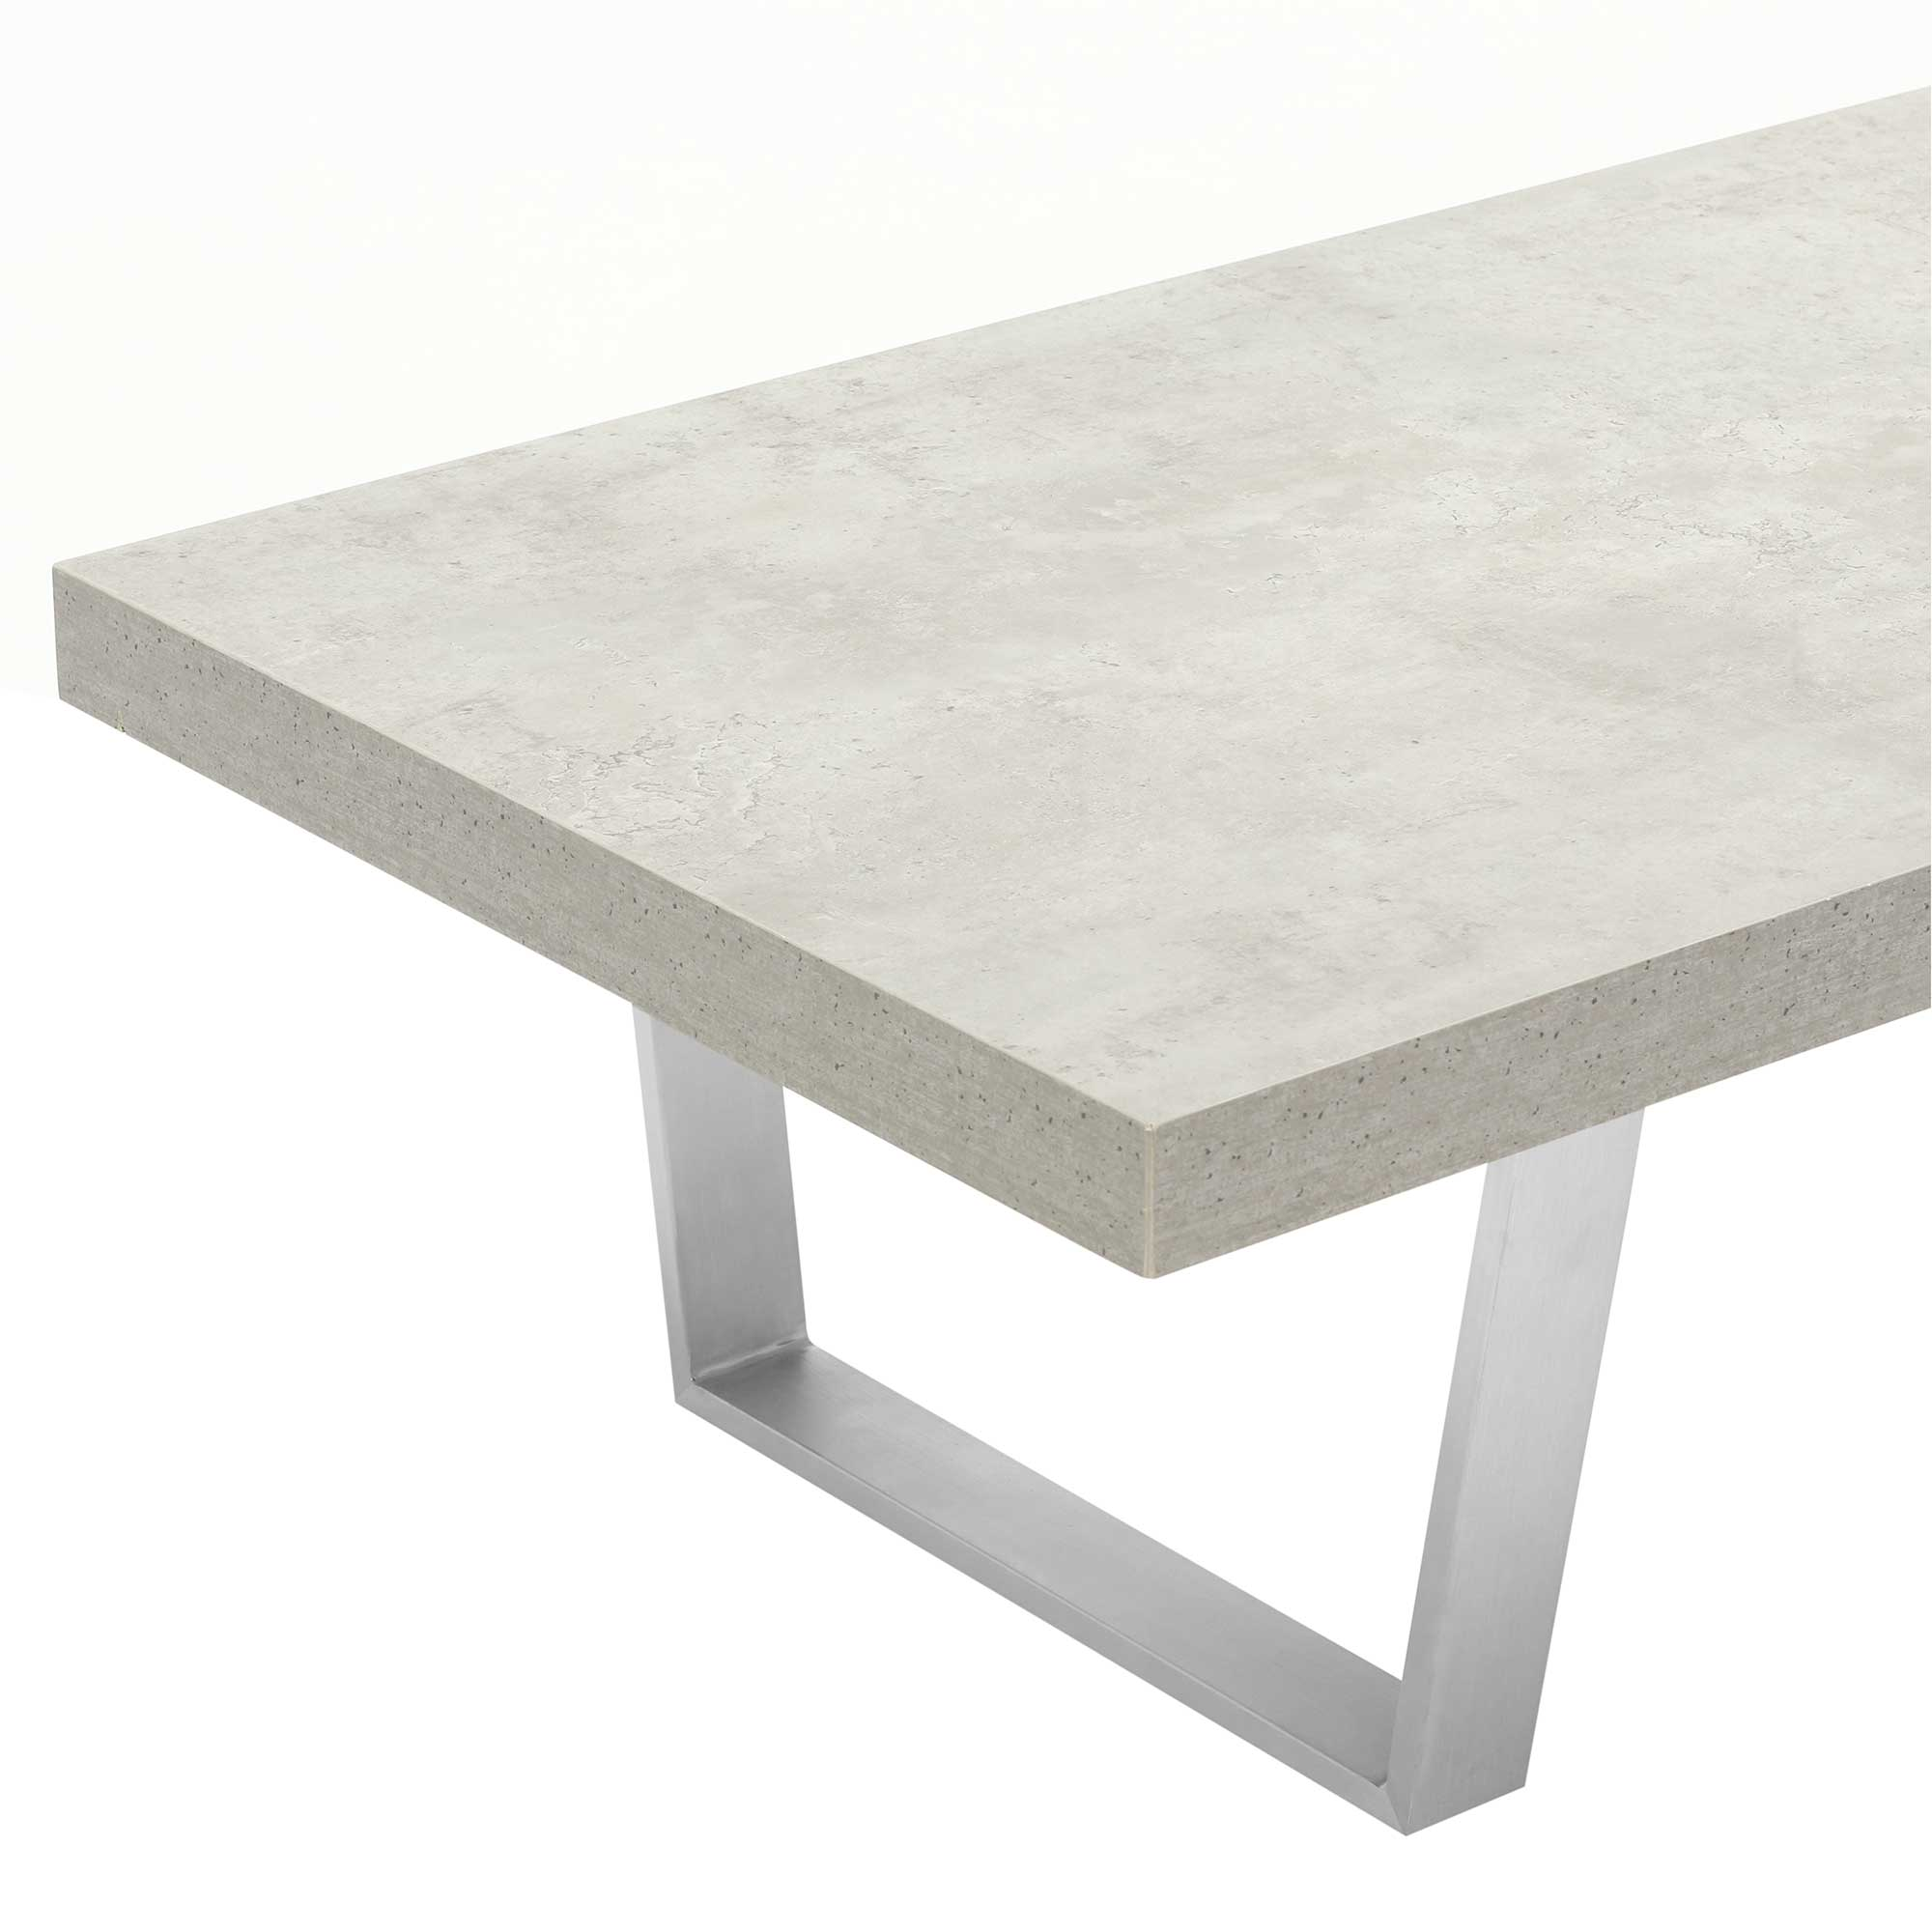 CONCRETE LOOK COFFEE TABLE - END DETAIL